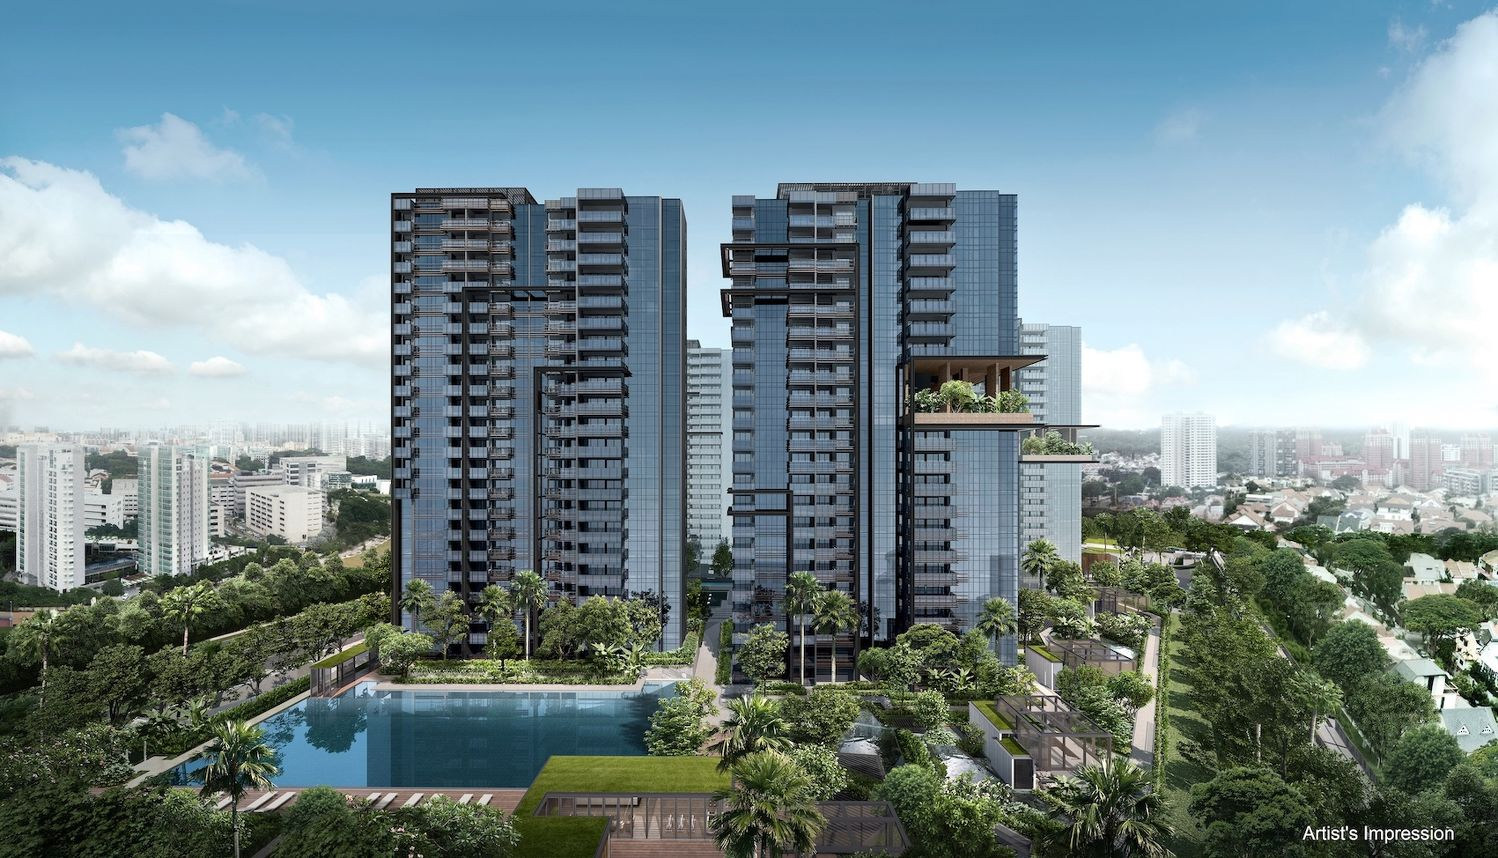 EDGEPROP SINGAPORE - Artist's impression of JadeScape by Qingjian Realty, which has announced that it will reopen its sales gallery on June 19 (Photo: Qingjian Realty)